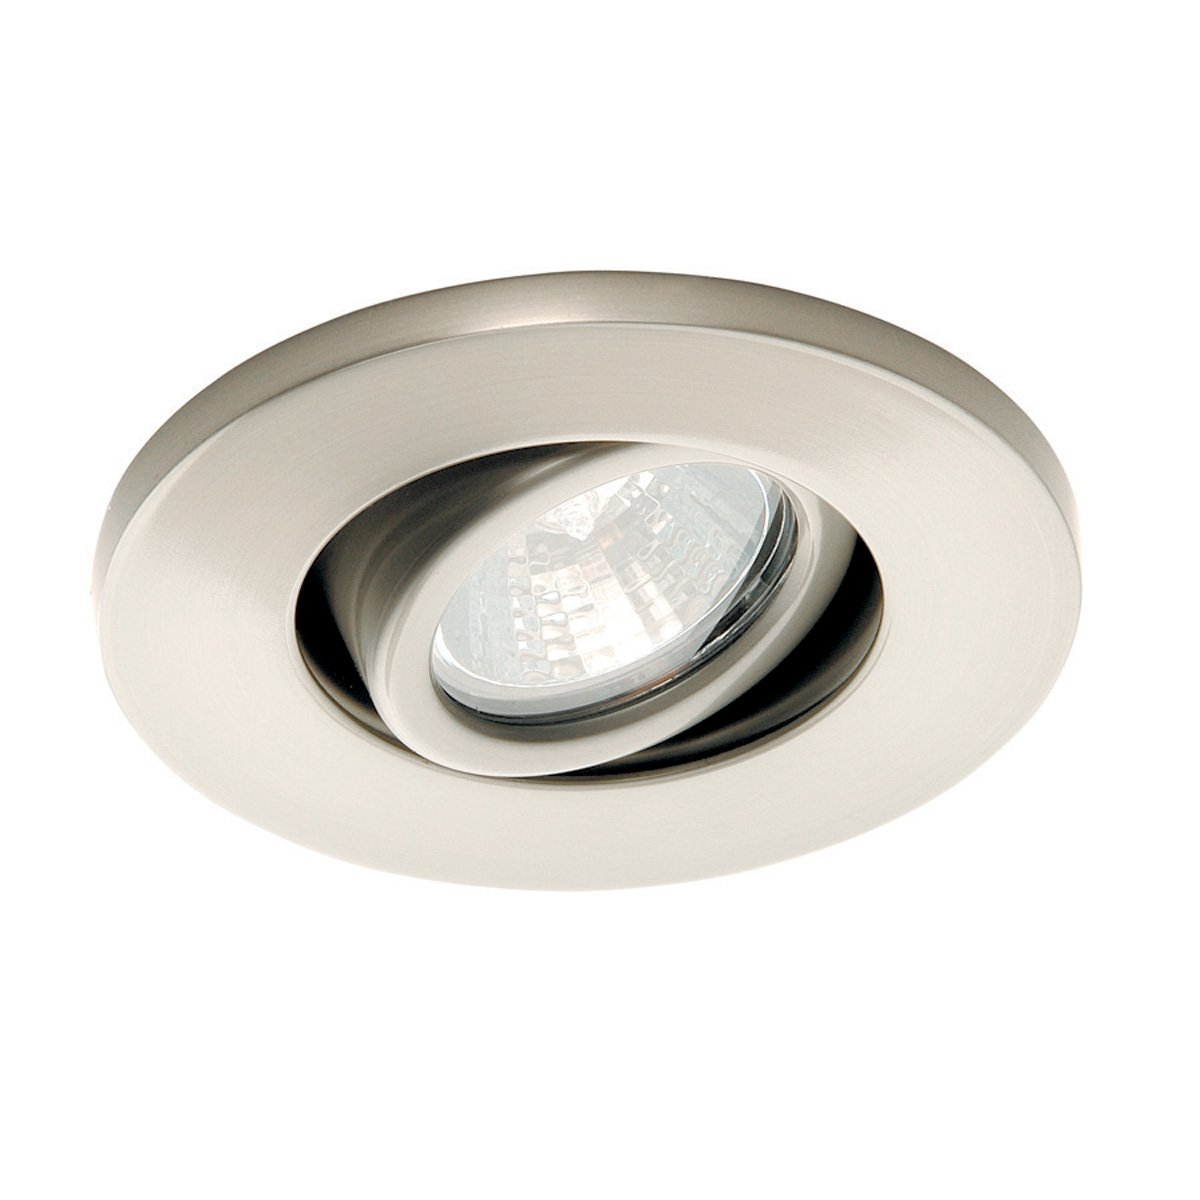 WAC Lighting HR-1137-BN Low Voltage Mini Recessed - Round Adjustable